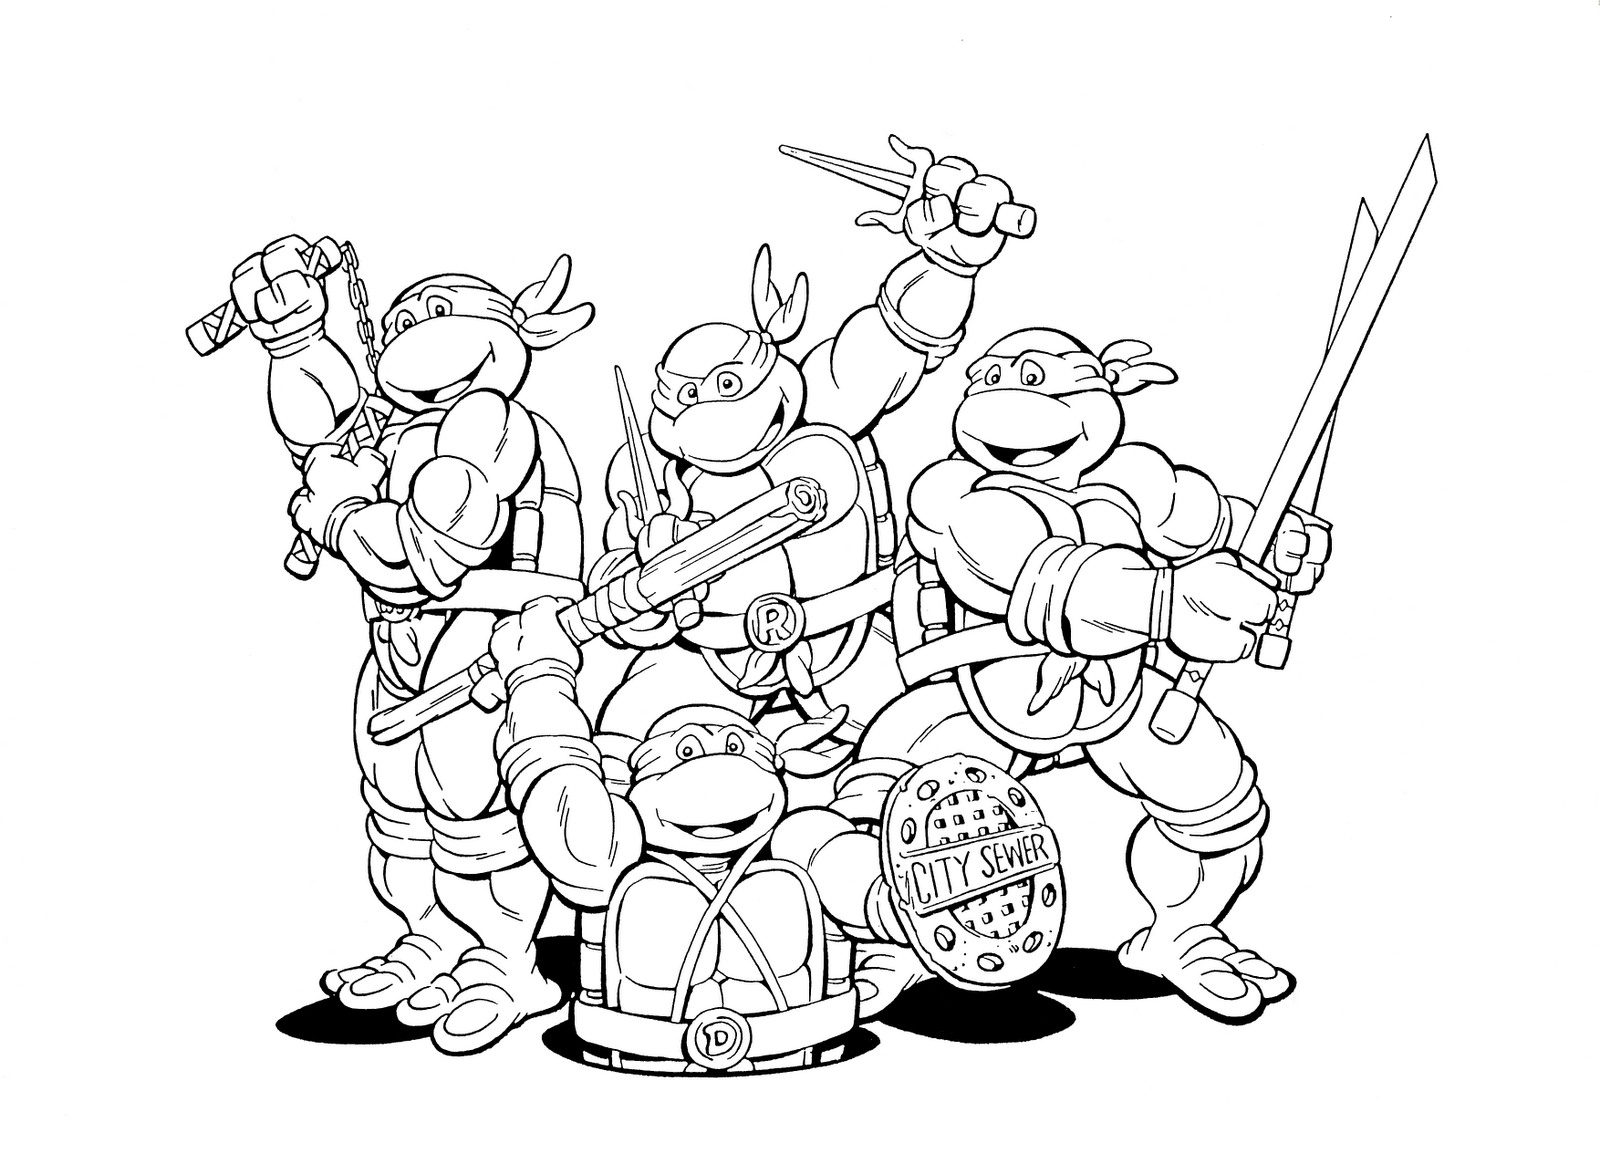 ninja turtle printables teenage mutant ninja turtles coloring pages ninja turtle turtle ninja printables